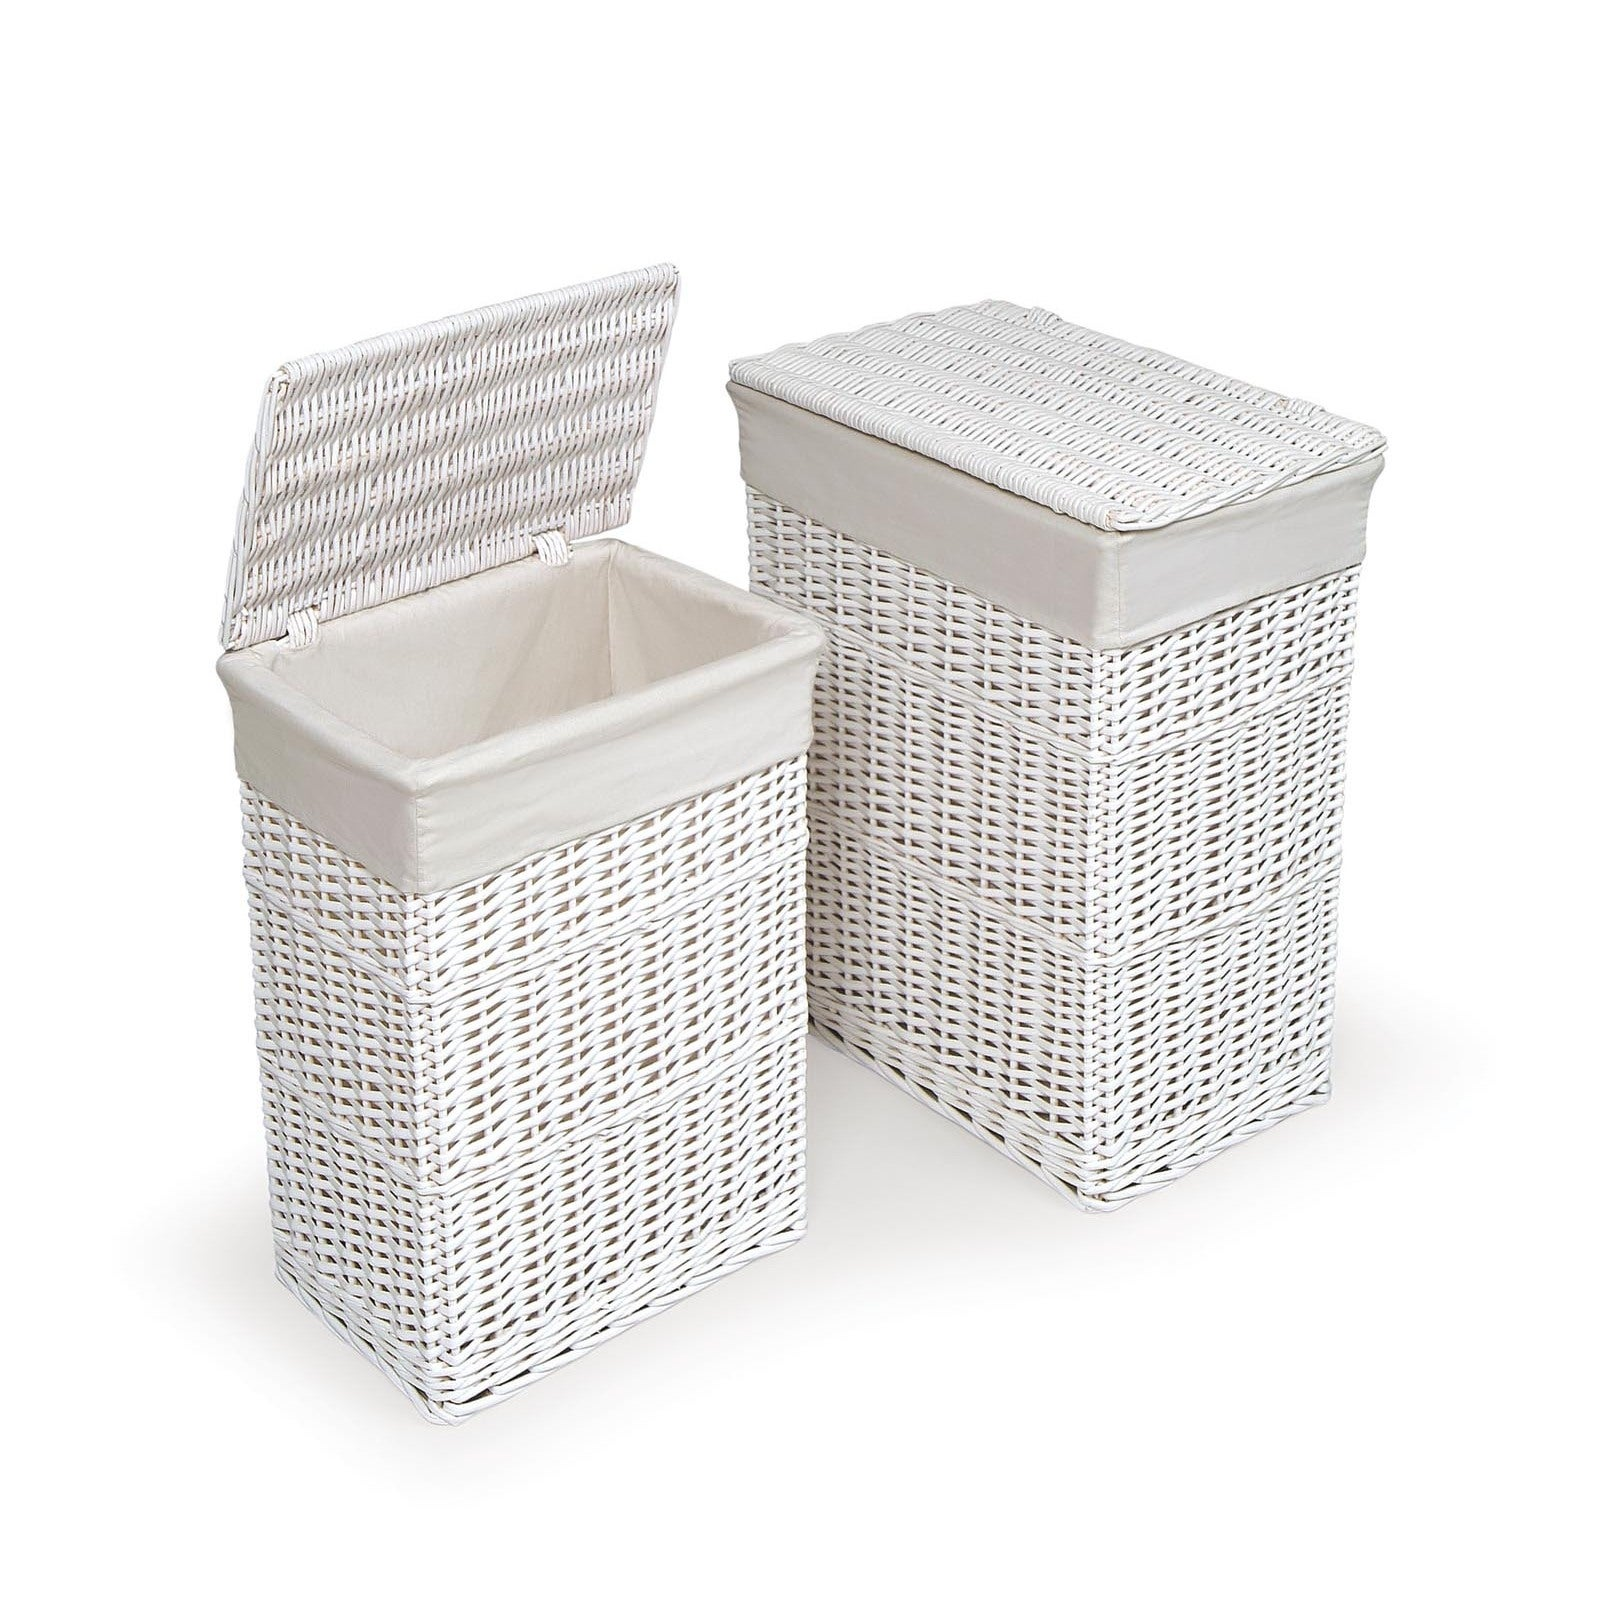 White Hamper With Liners Set Of 2 Free Shipping Today 3153125